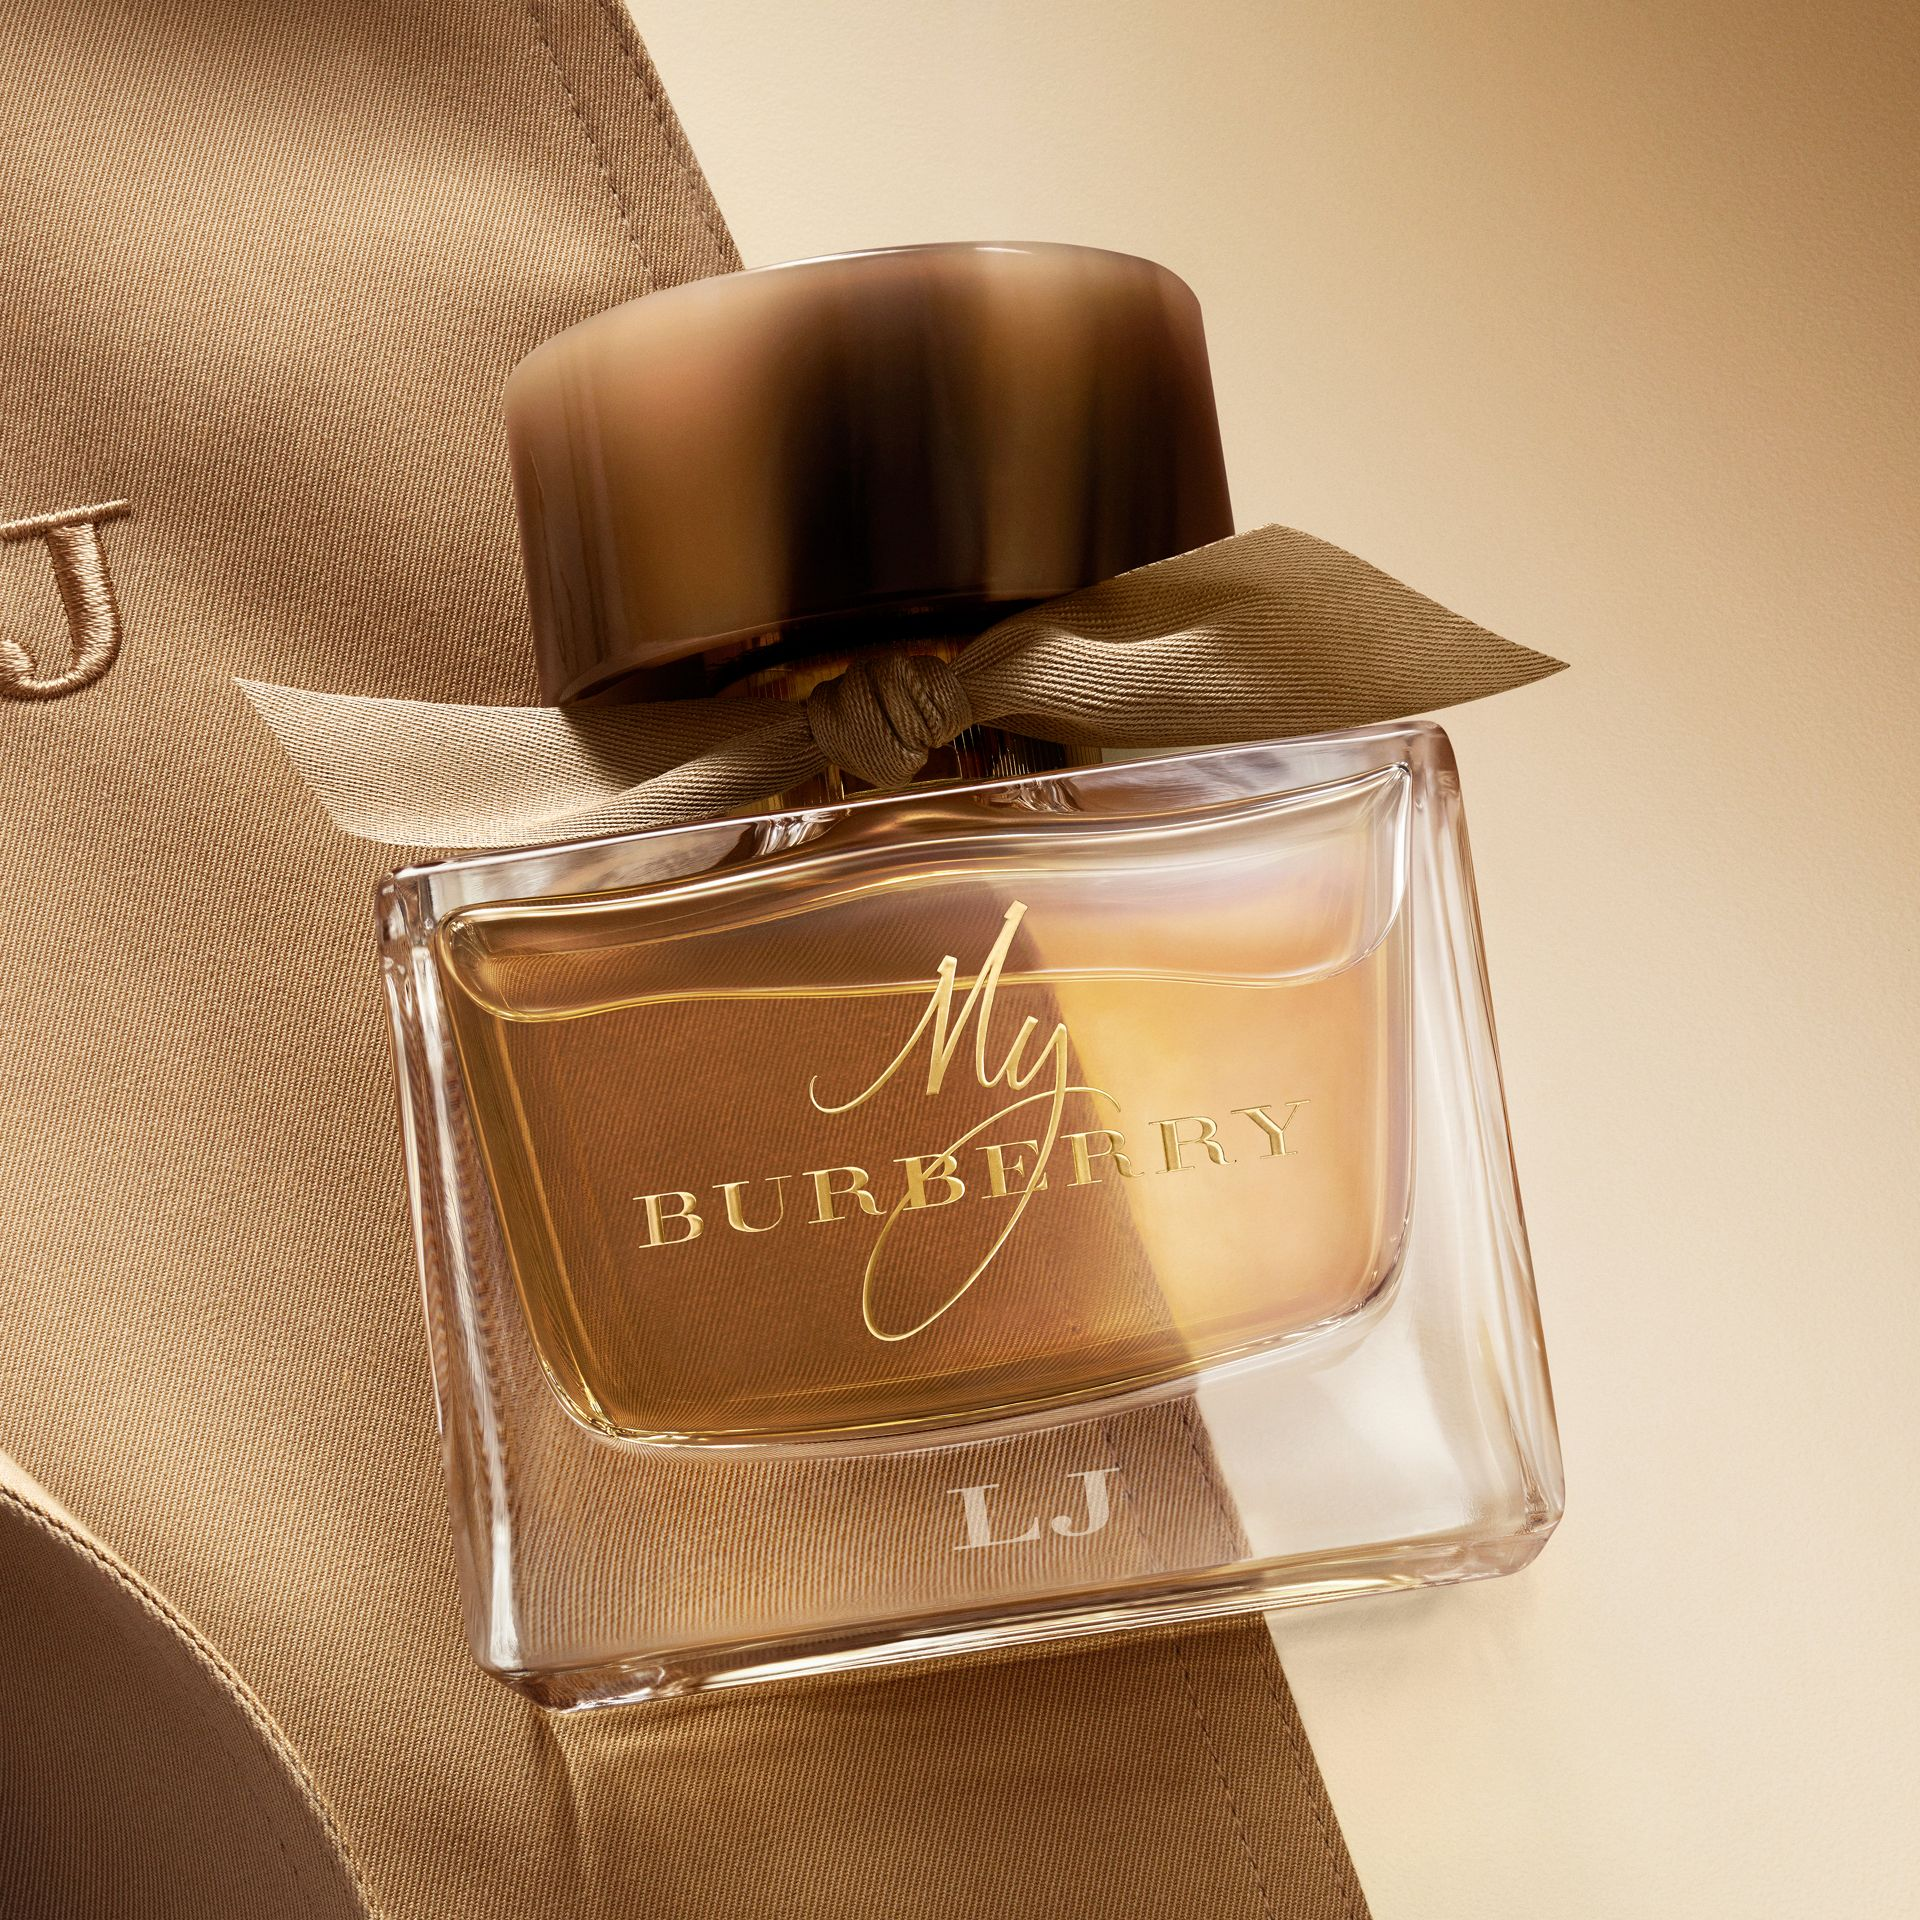 My Burberry Eau de Parfum 90ml - gallery image 5